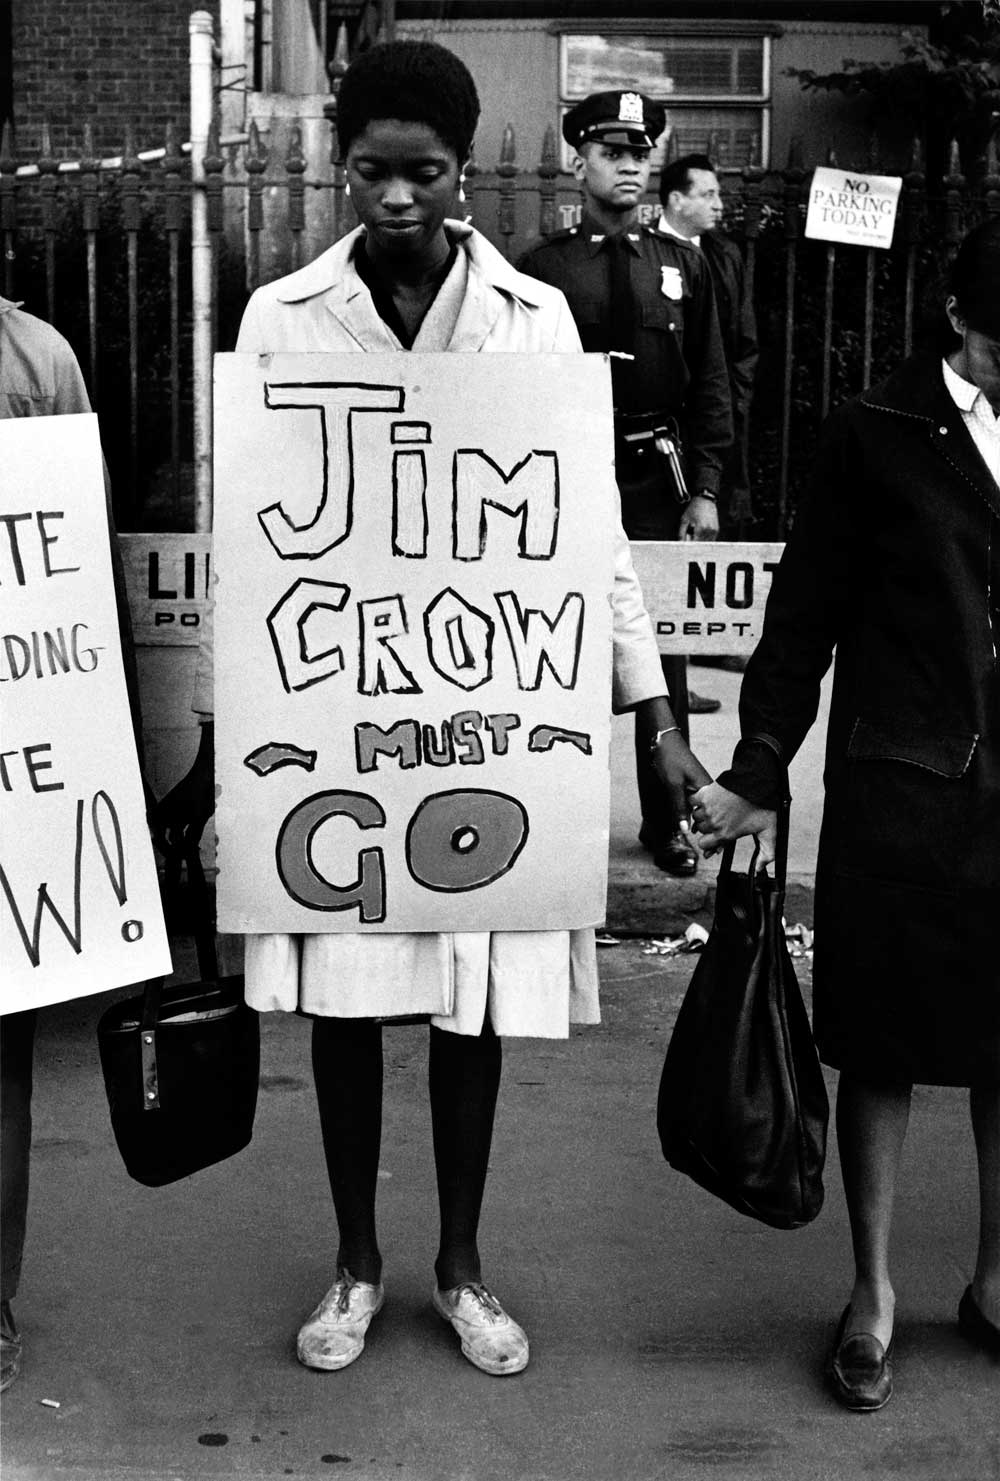 reactions to jim crow The new jim crow: mass incarceration in the age of colorblindness was written by michelle alexander to expose the truth of racial injustice in the system of mass incarceration through the comparison of the racial control during the jim crow era.